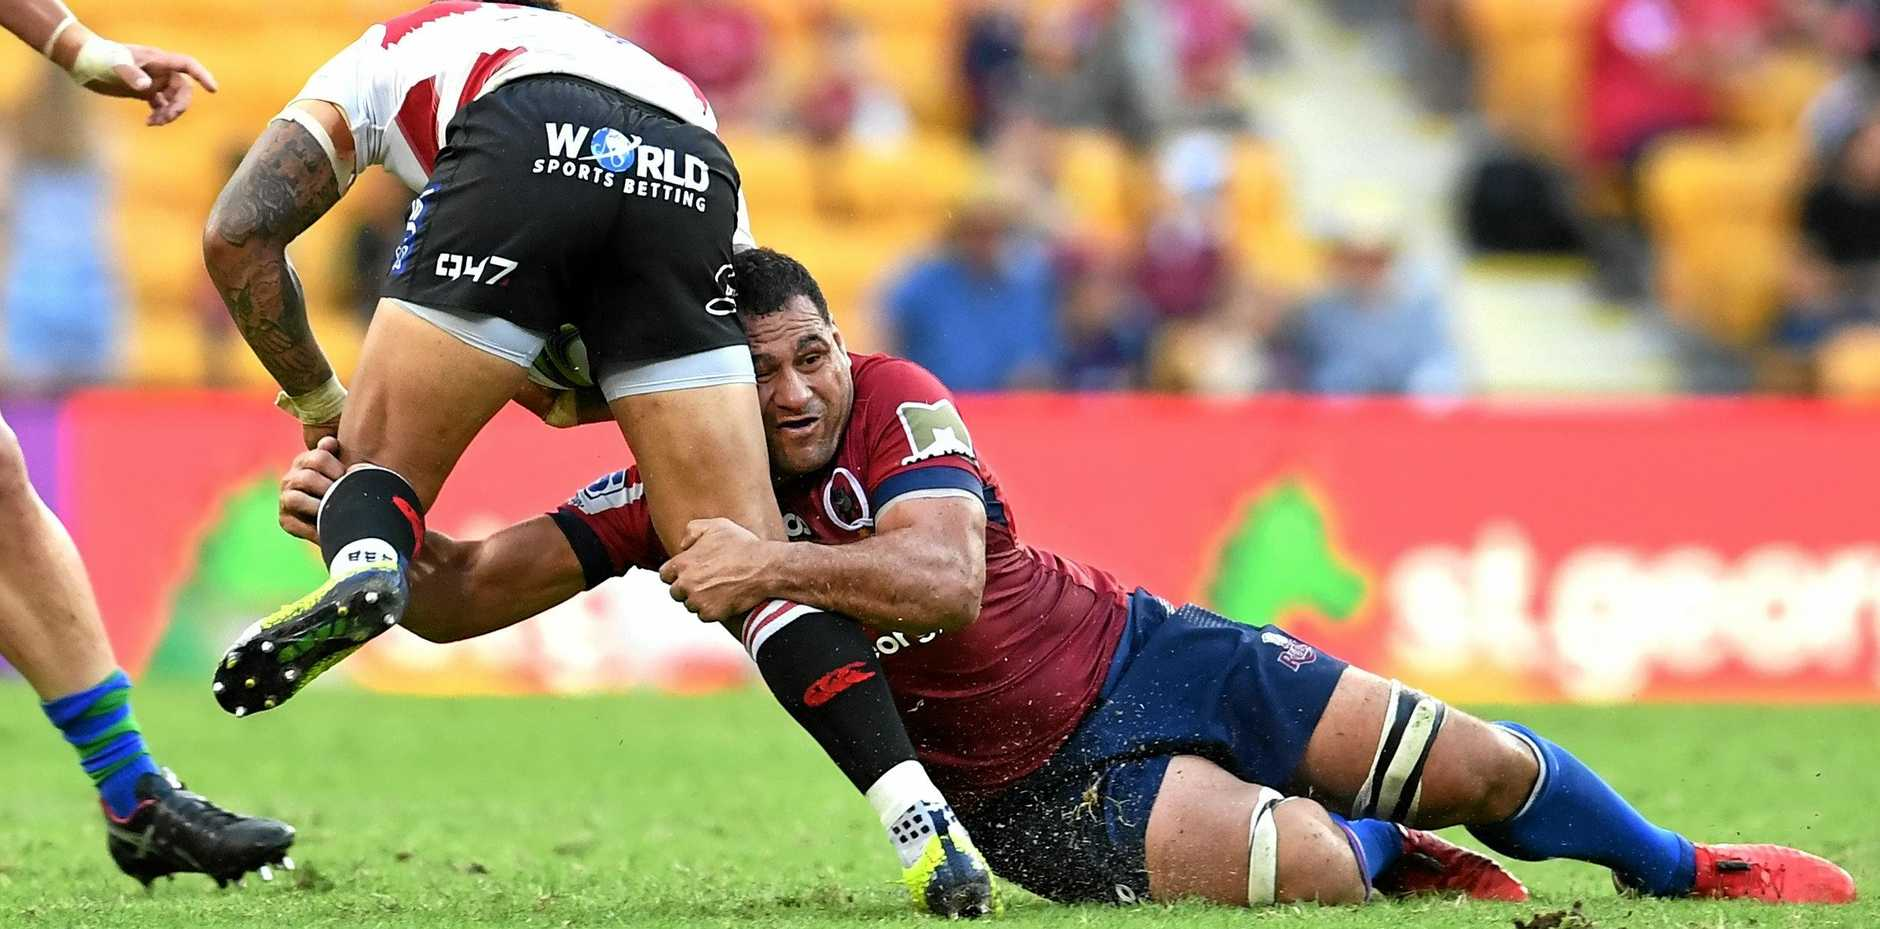 George Smith of the Reds, right, tackles the Lions' Elton Jantjies during their sides' Round 11 Super Rugby match in Brisbane on Saturday. Picture: Dan Peled/AAP